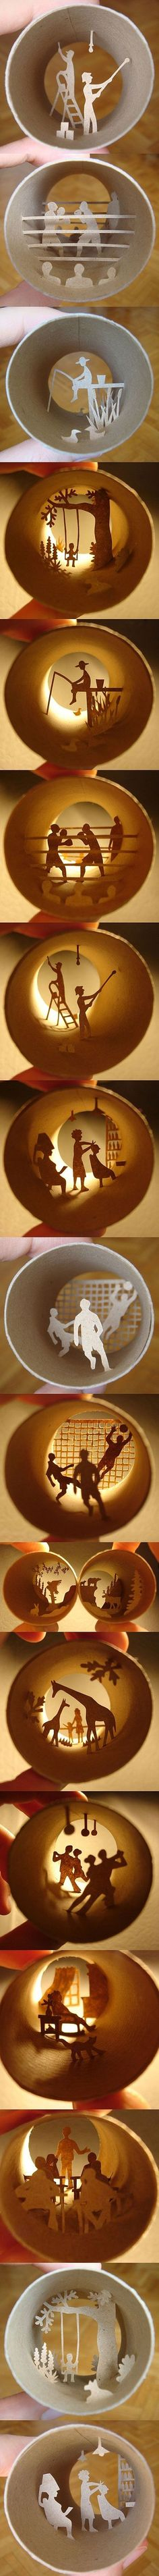 Toilet paper rolls could not be used any better than this... amazing an tiny papercuts, would be so awesome with a few of them on the wall.